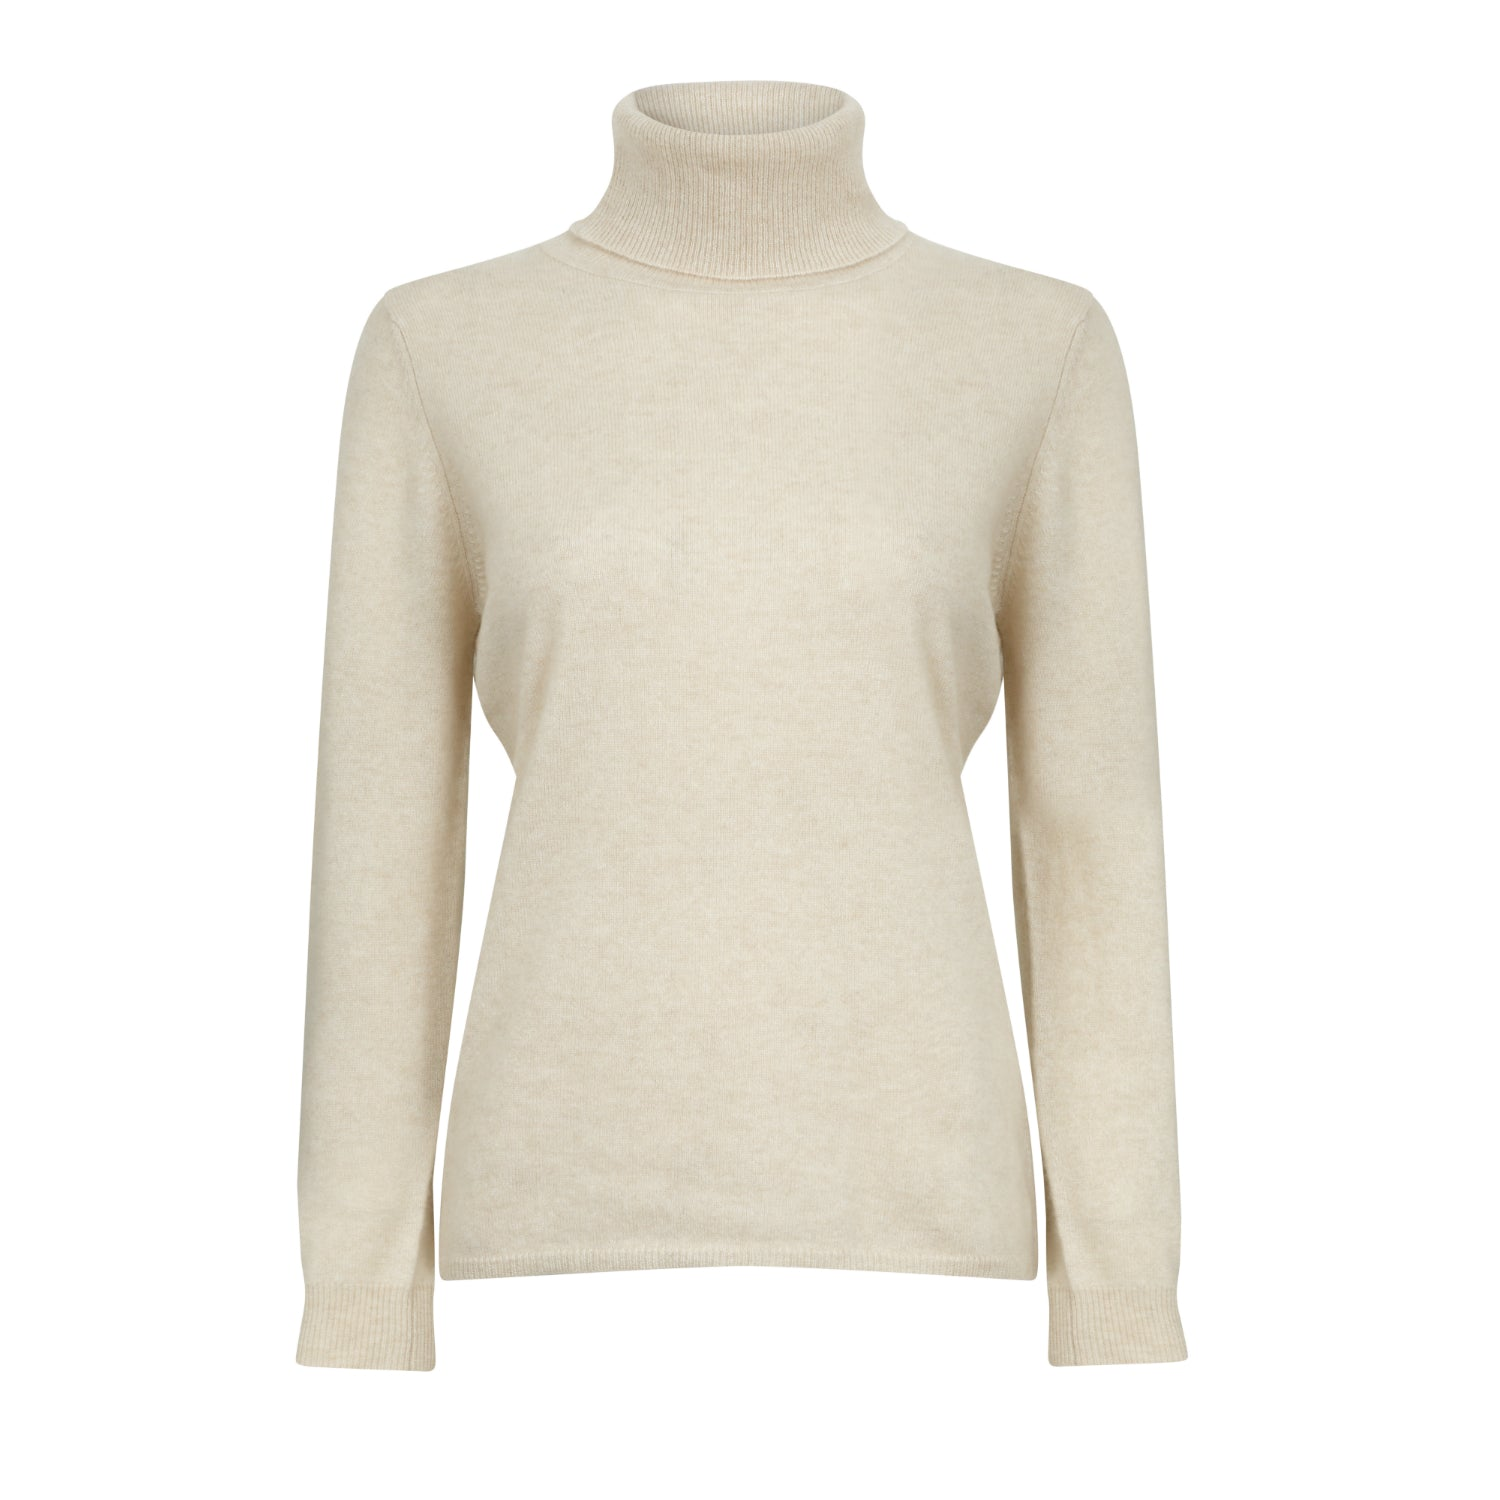 6e05397a43a9 Shop for Ladies Pure Cashmere Polo Neck Sweaters - The Cashmere Choice